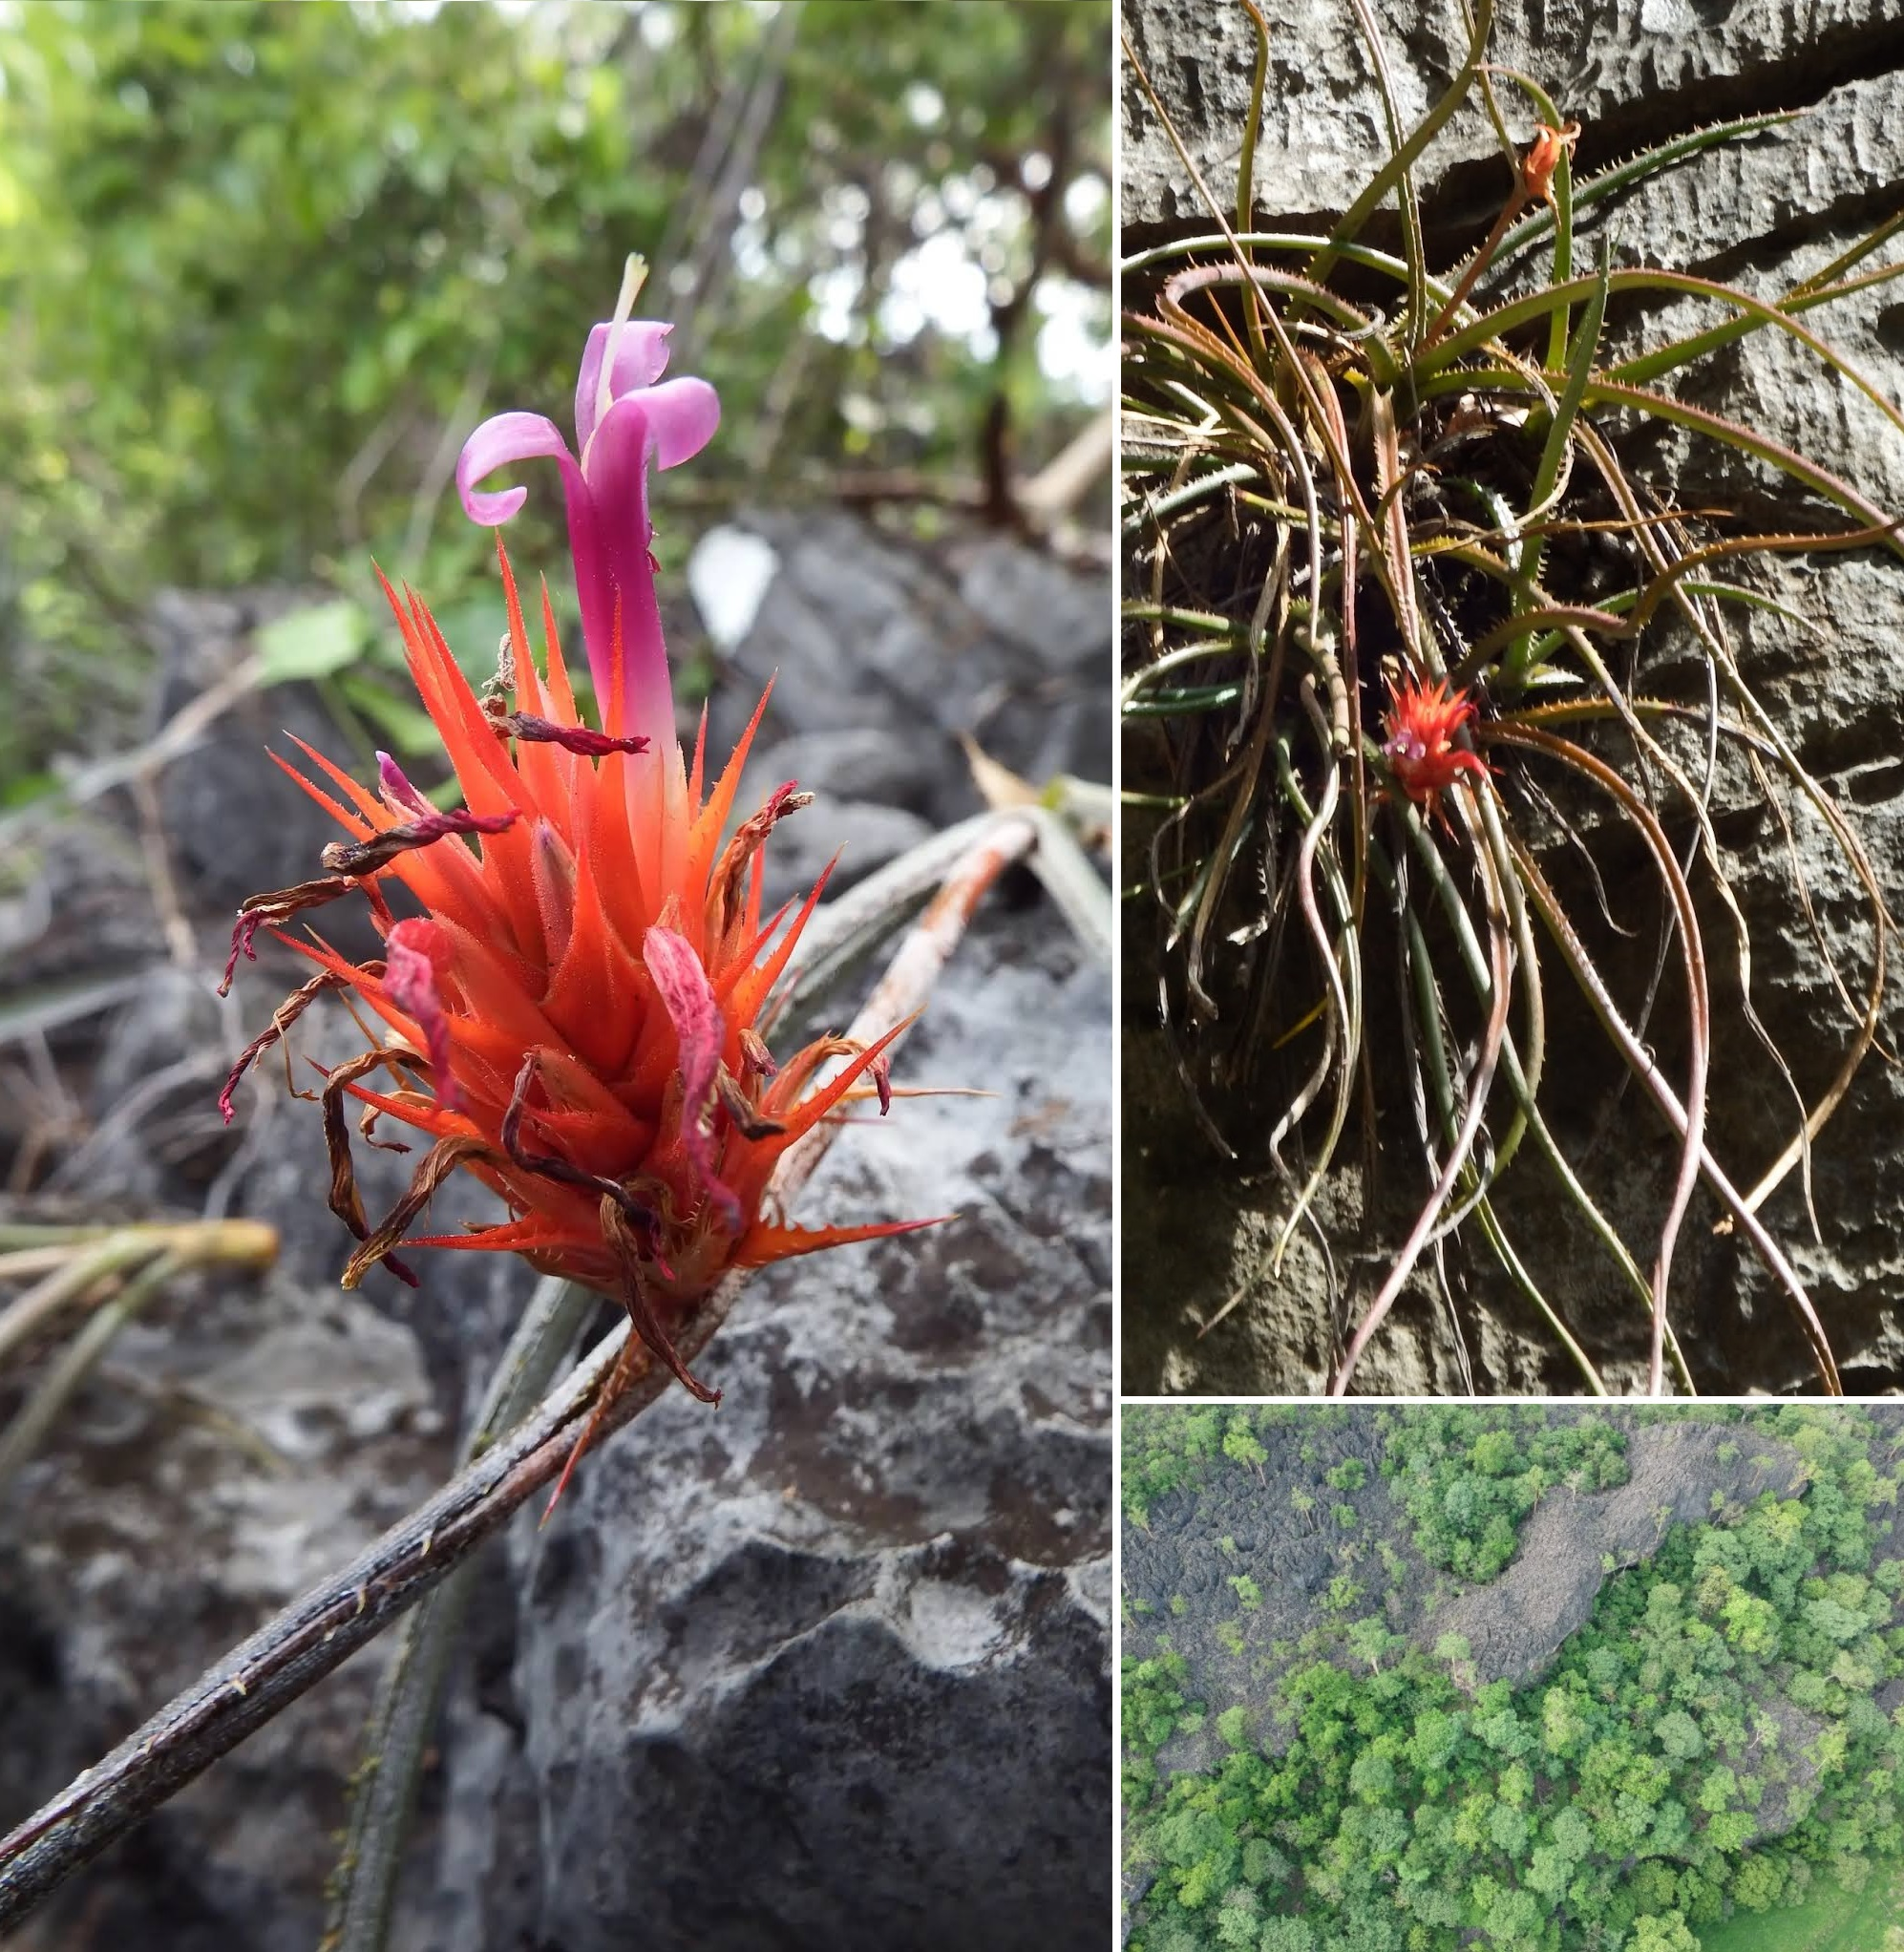 Species New to Science: [Botany • 2020] Acanthostachys calcicola  (Bromeliaceae, Bromelioideae) • A New Species from A Limestone Outcrop in  Tocantins State, Brazil